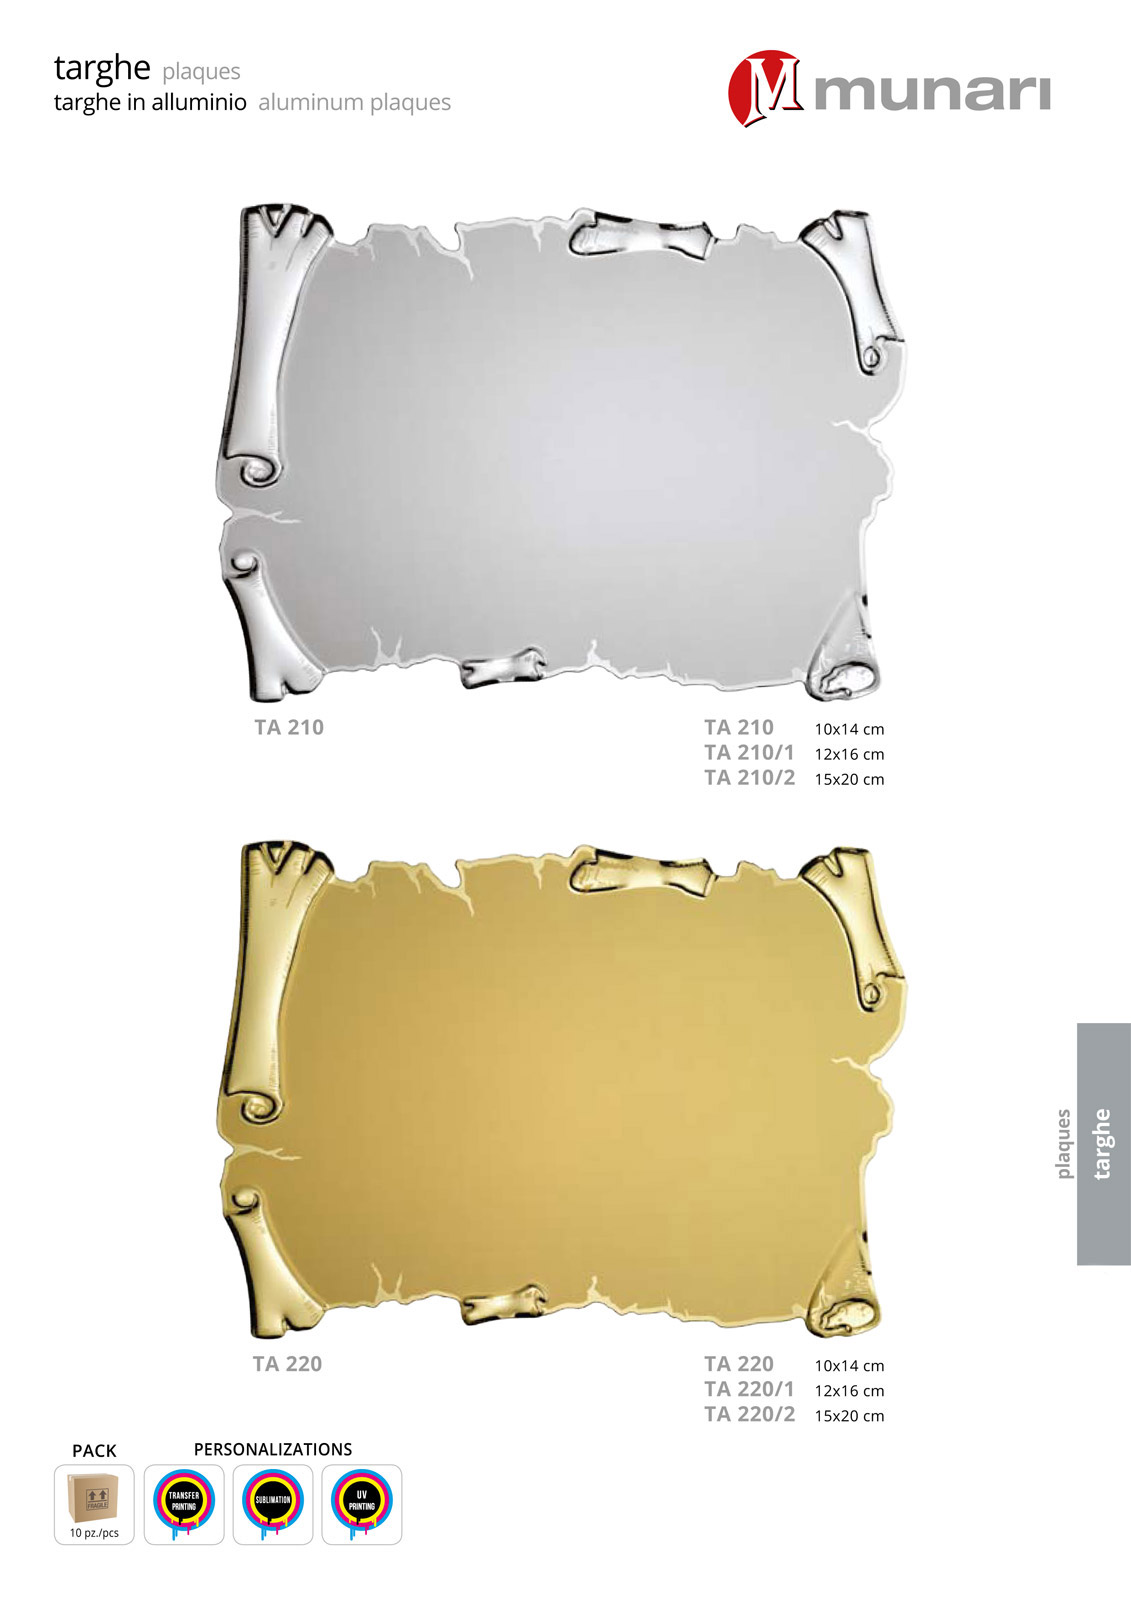 Aluminum plaques for sublimation or transfer printing series TA 210